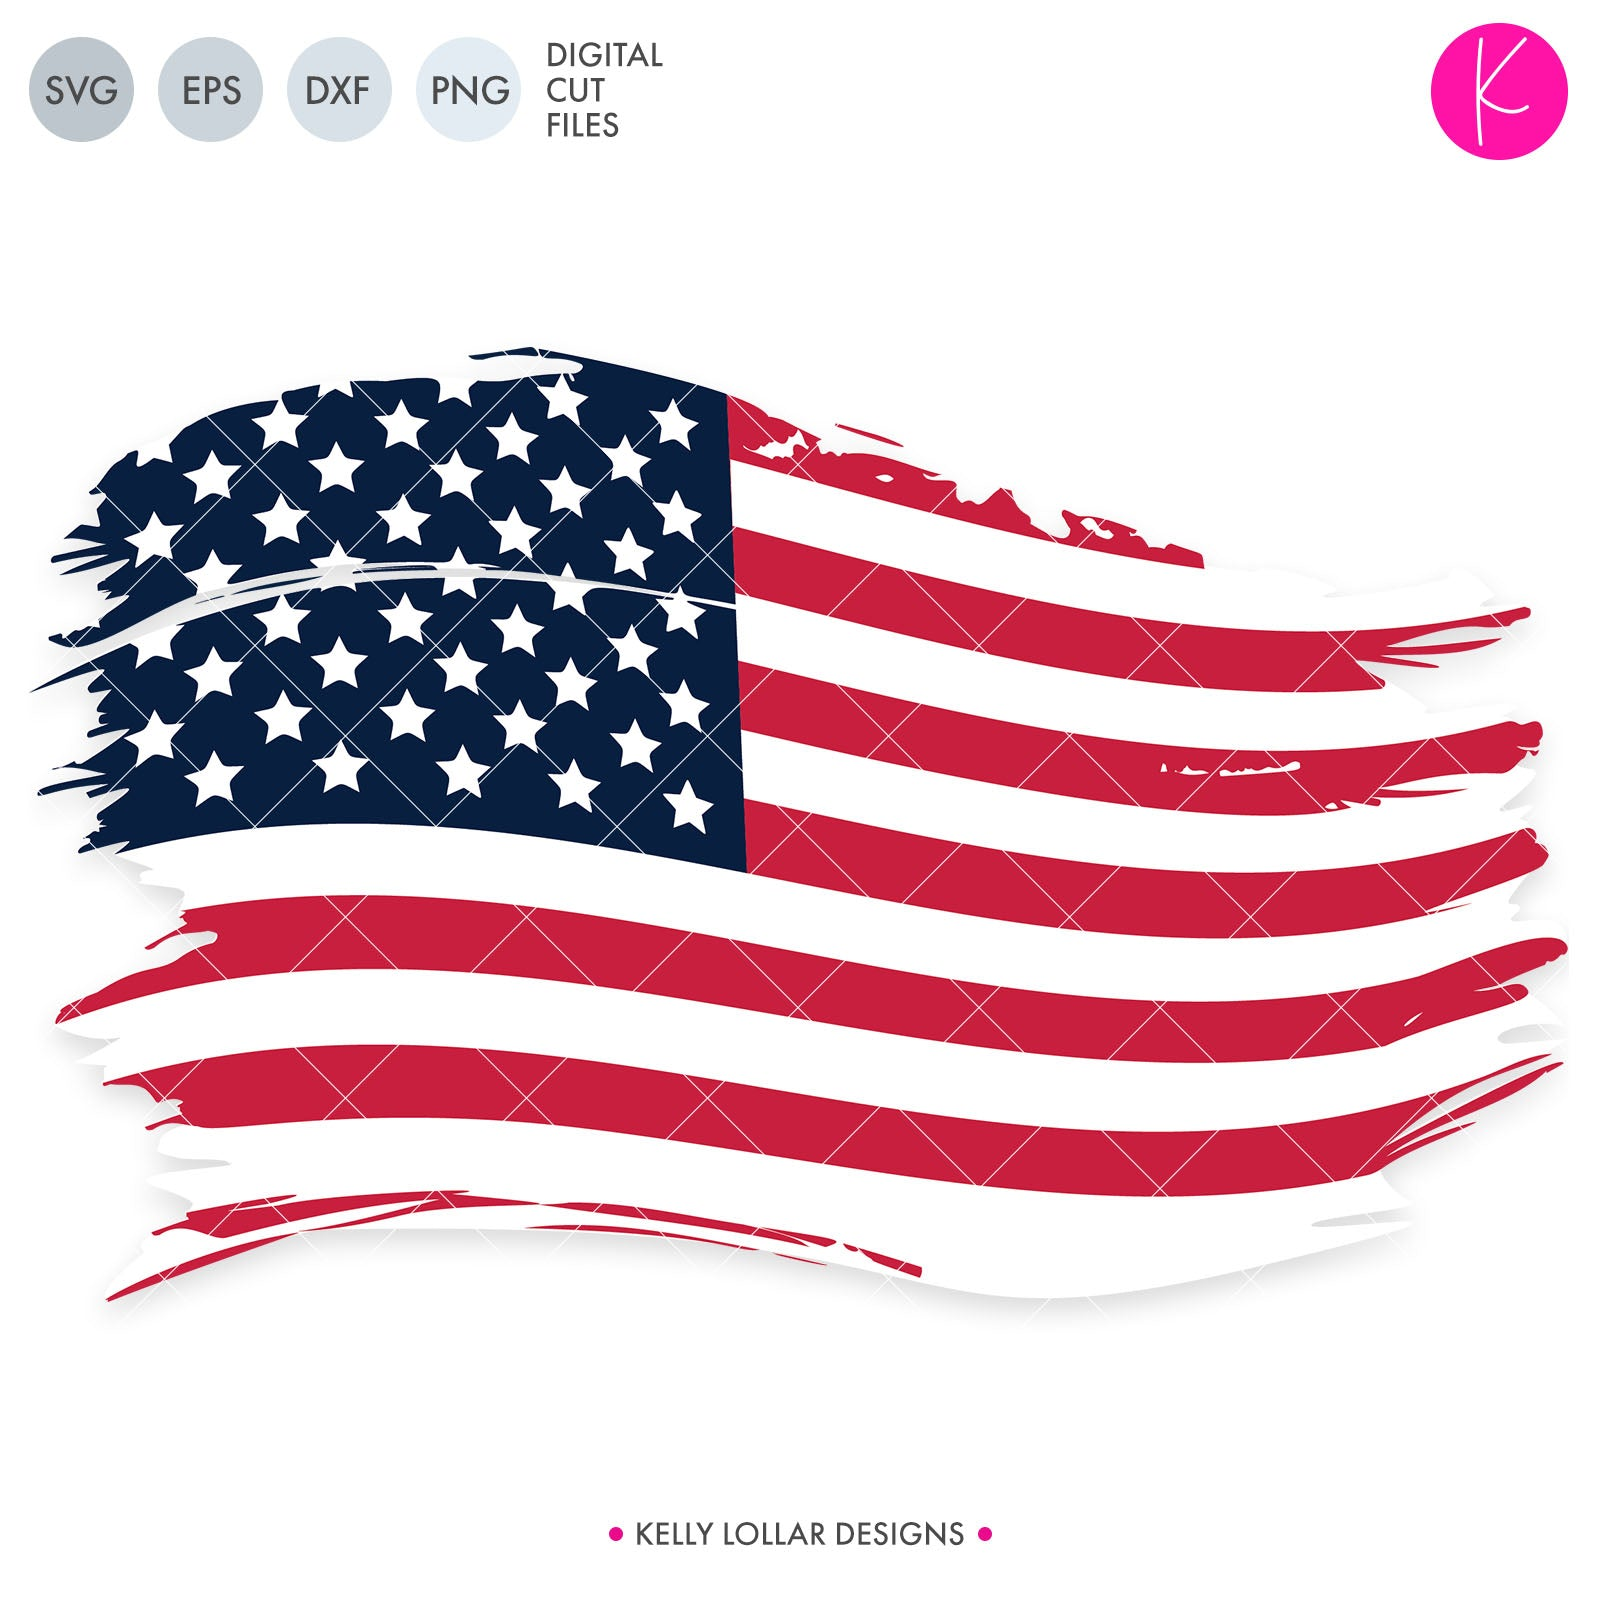 Distressed American Flag | SVG DXF EPS PNG Cut Files Grunge American Flag with Solid Base for Patriotic Designs | SVG DXF EPS PNG Cut Files You've got the super soft vintage tee ready for 4th of July and now